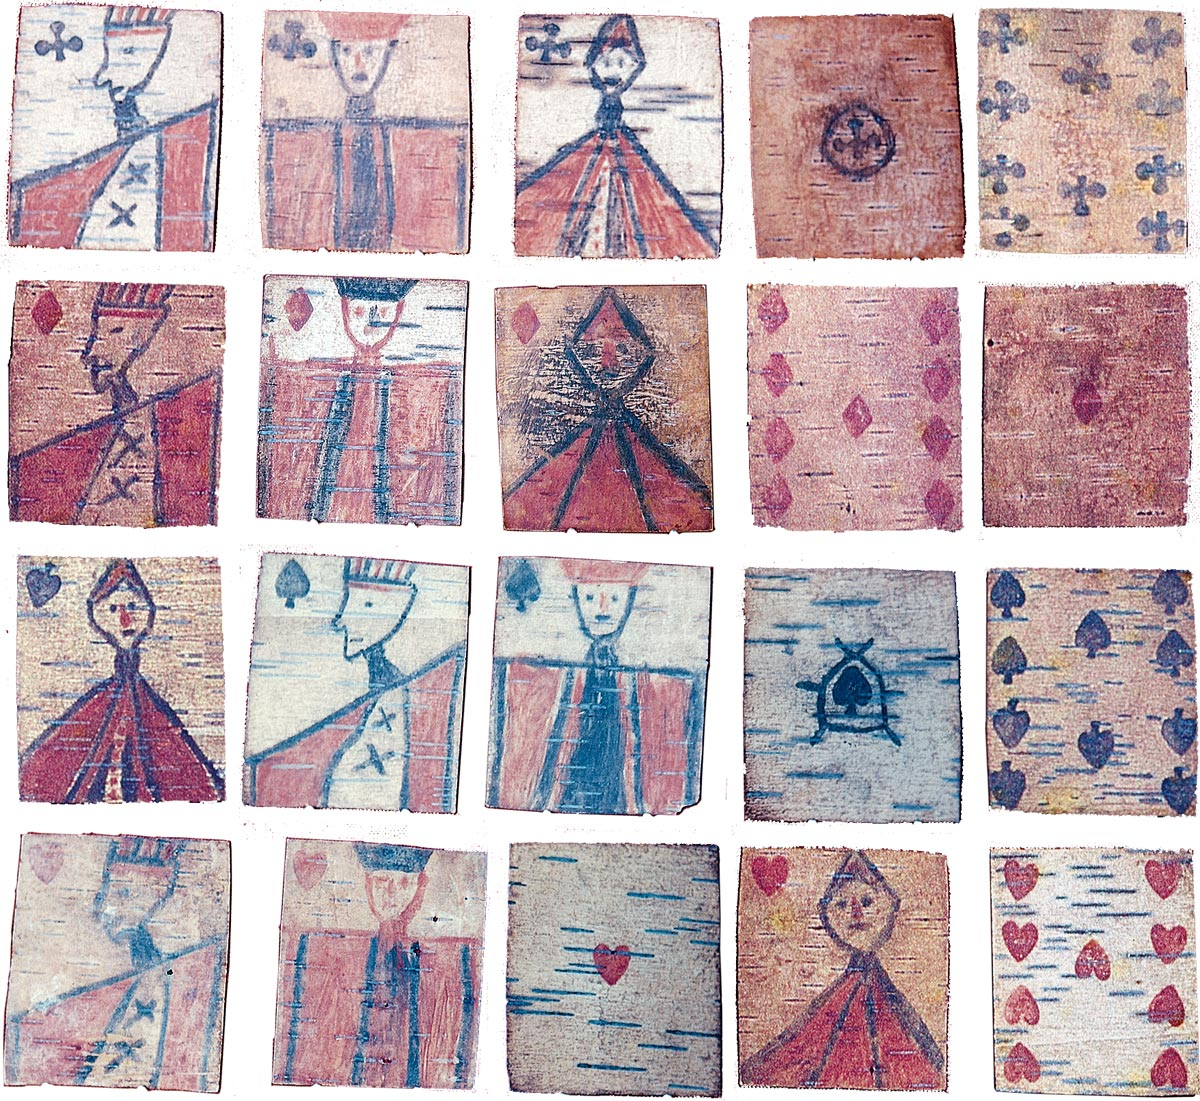 Ojibwa Native Indian playing cards hand manufactured on birch bark in imitation of standard French / English cards, c.1875